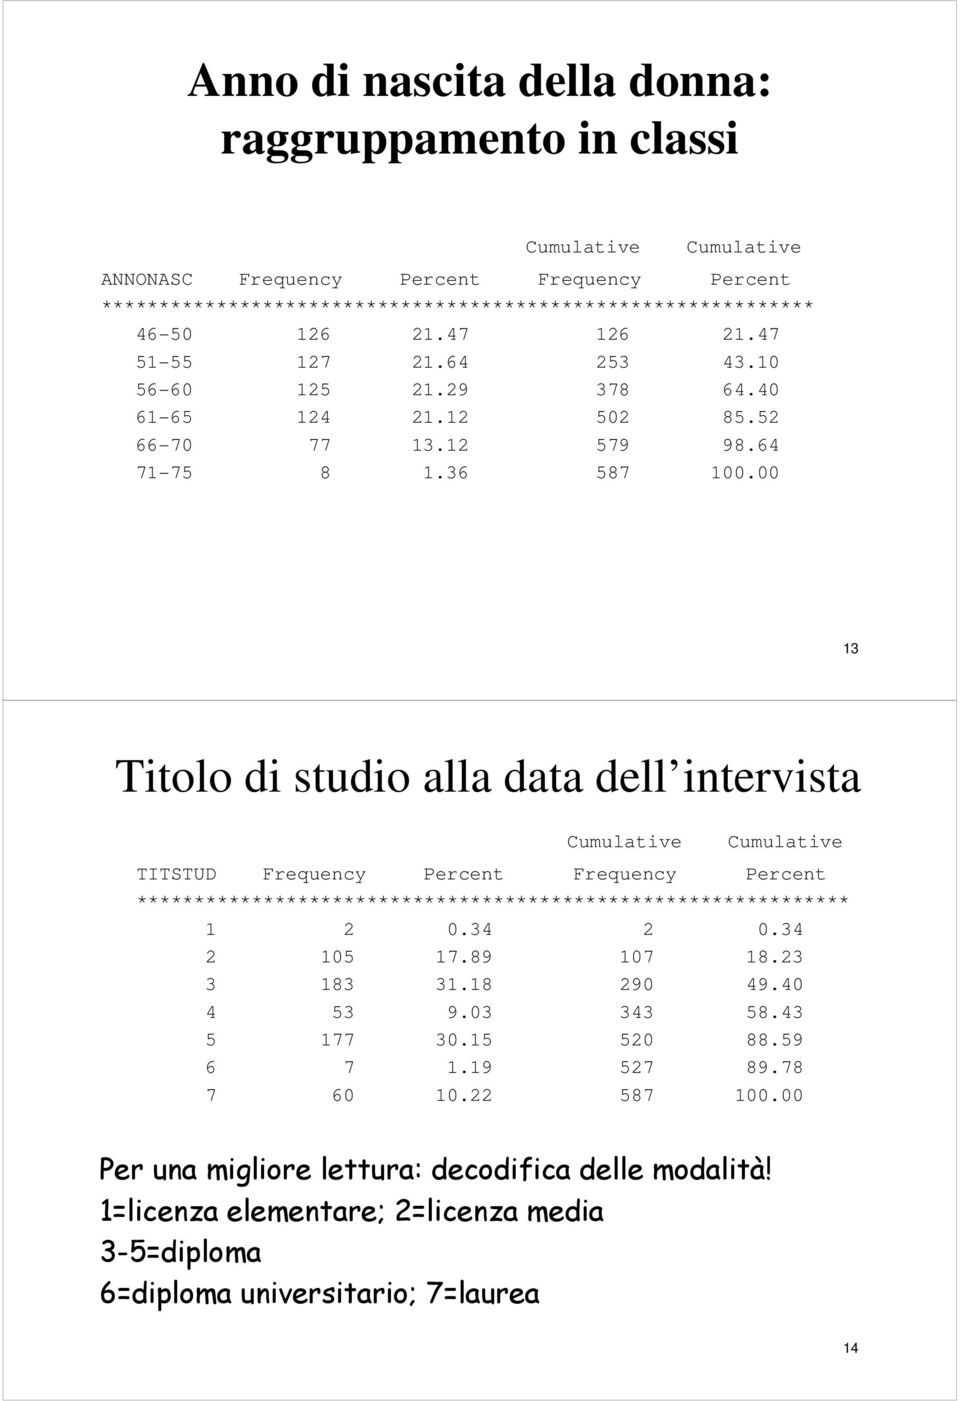 00 3 Titolo di studio alla data dell intervista Cumulative Cumulative TITSTUD Frequency Percent Frequency Percent ************************************************************** 0.